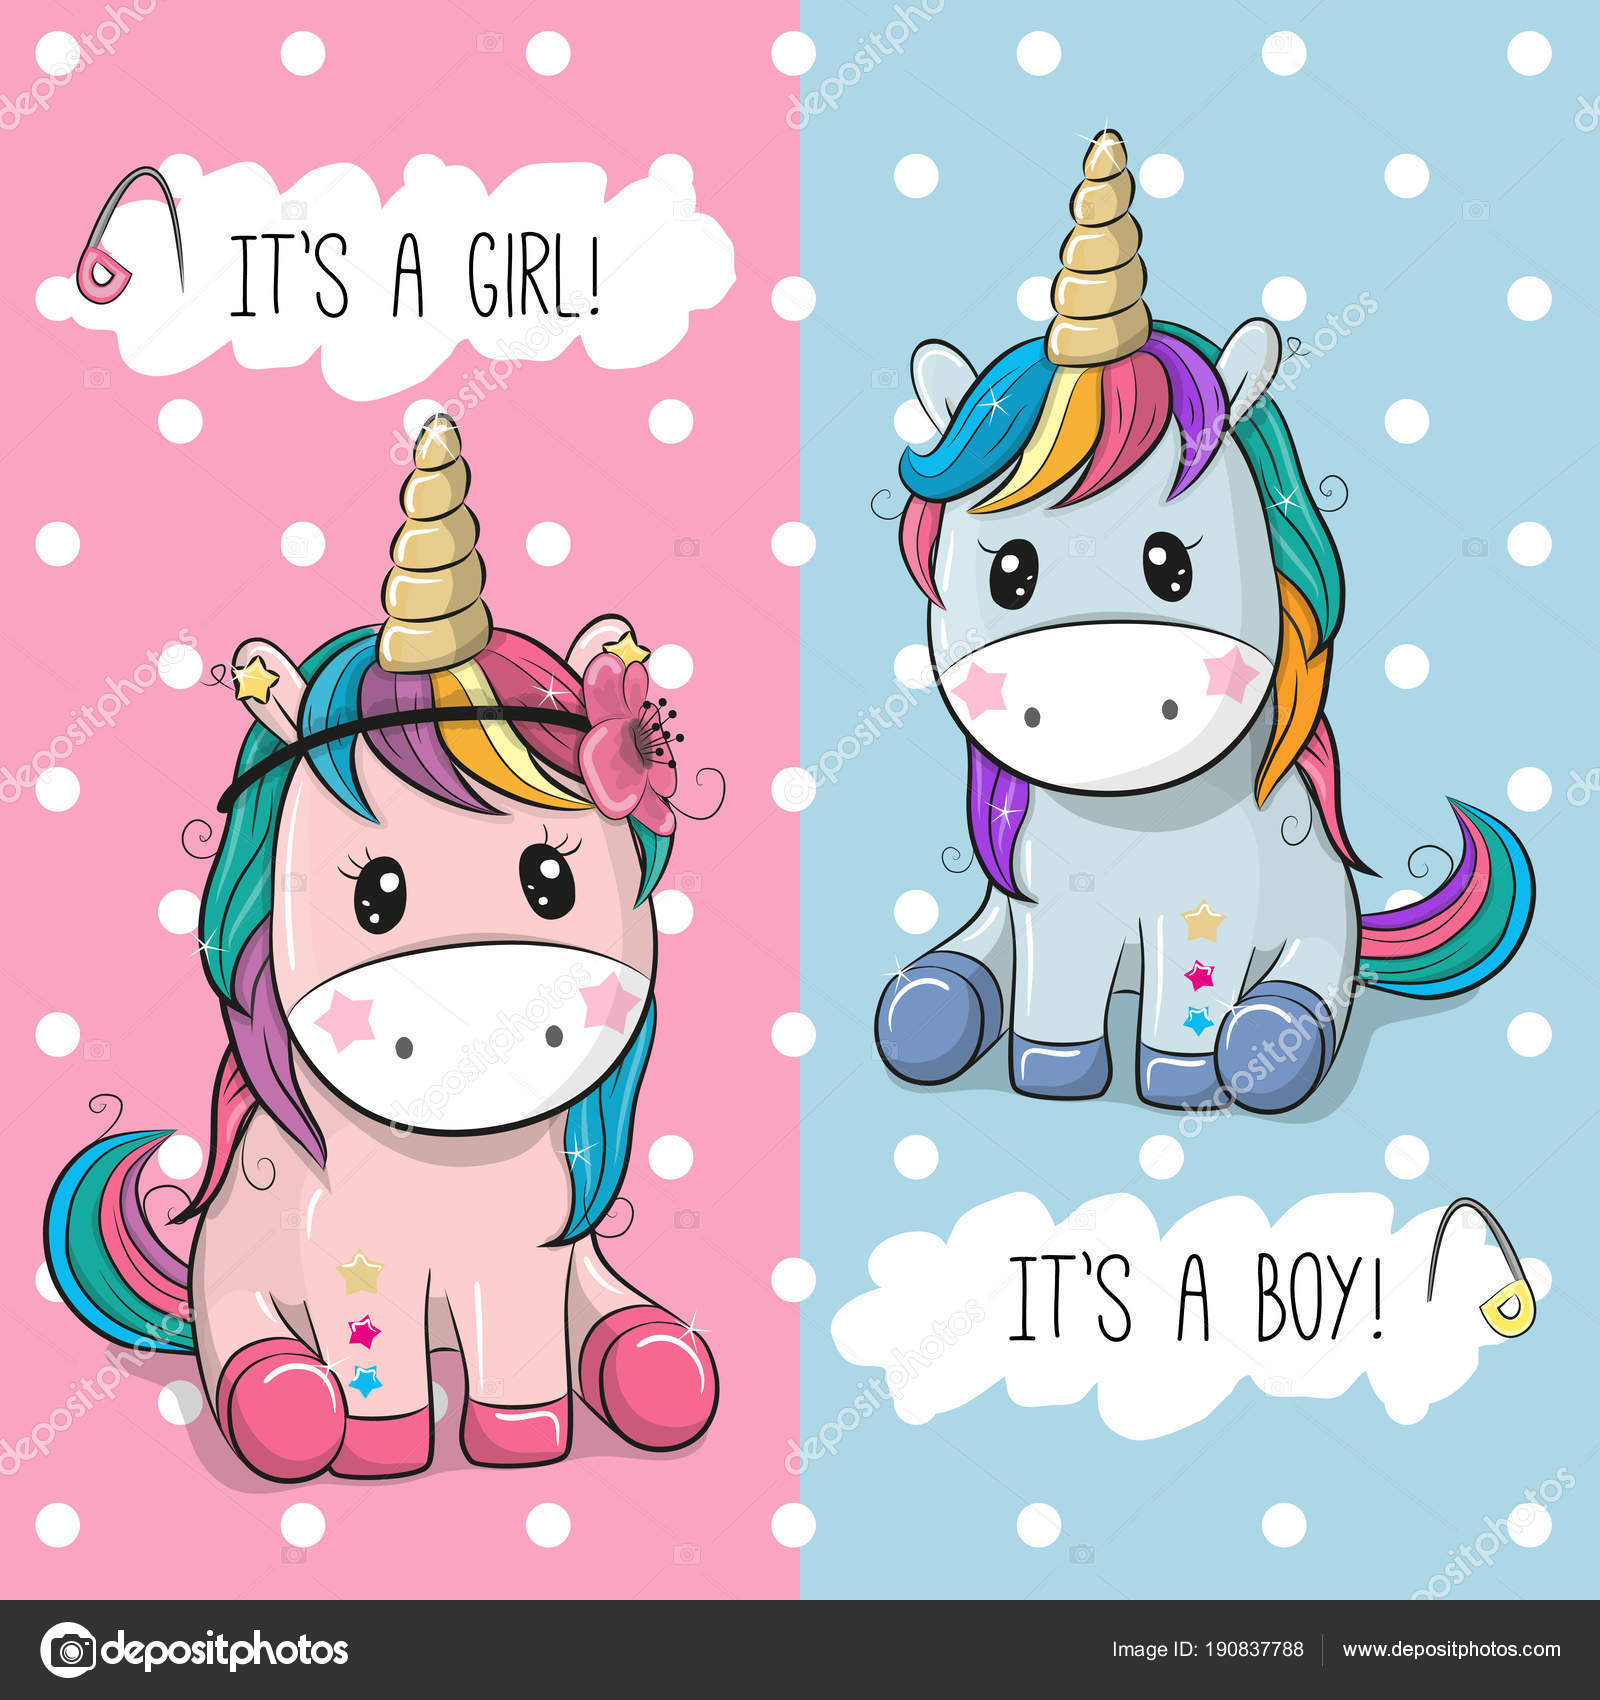 Baby Shower Greeting Card With Cute Unicorns Image Vectorielle